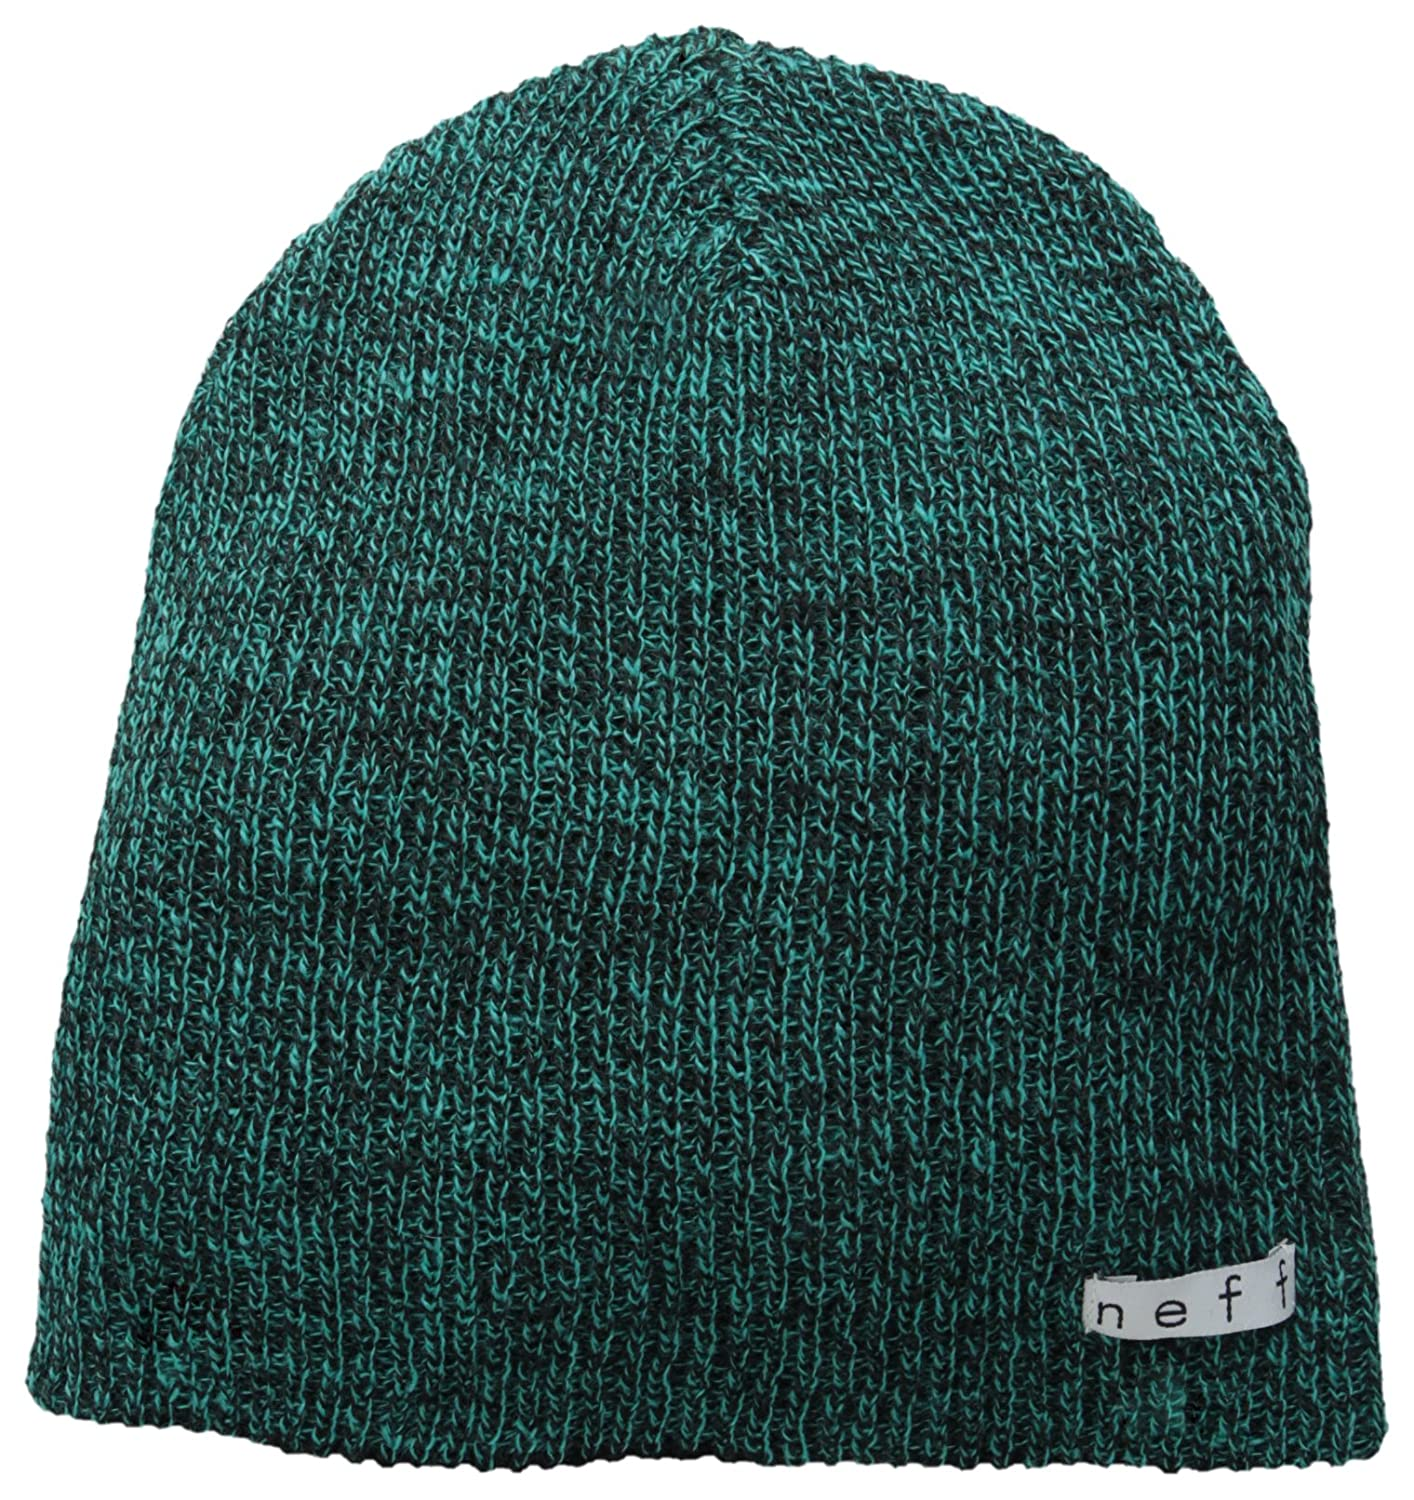 Neff Men's Daily Beanie Neff Men's Daily Beanie Black One Size Neff Young Men's